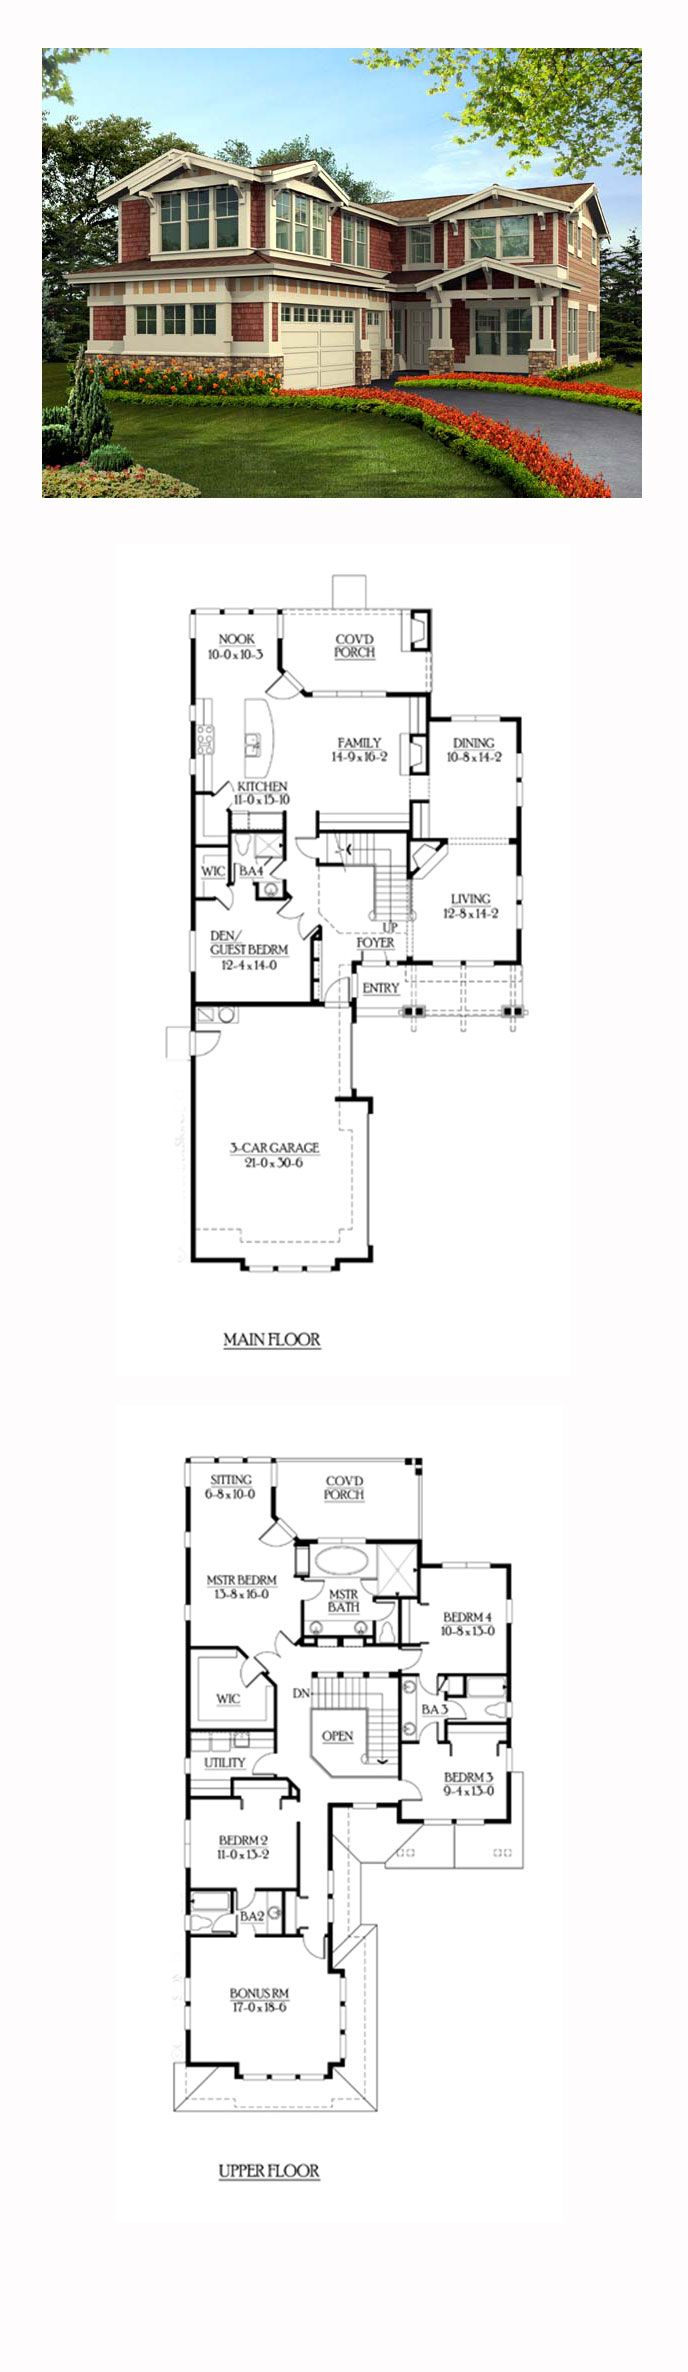 Awe Inspiring 17 Best Ideas About Cool House Plans On Pinterest Small Cottage Largest Home Design Picture Inspirations Pitcheantrous